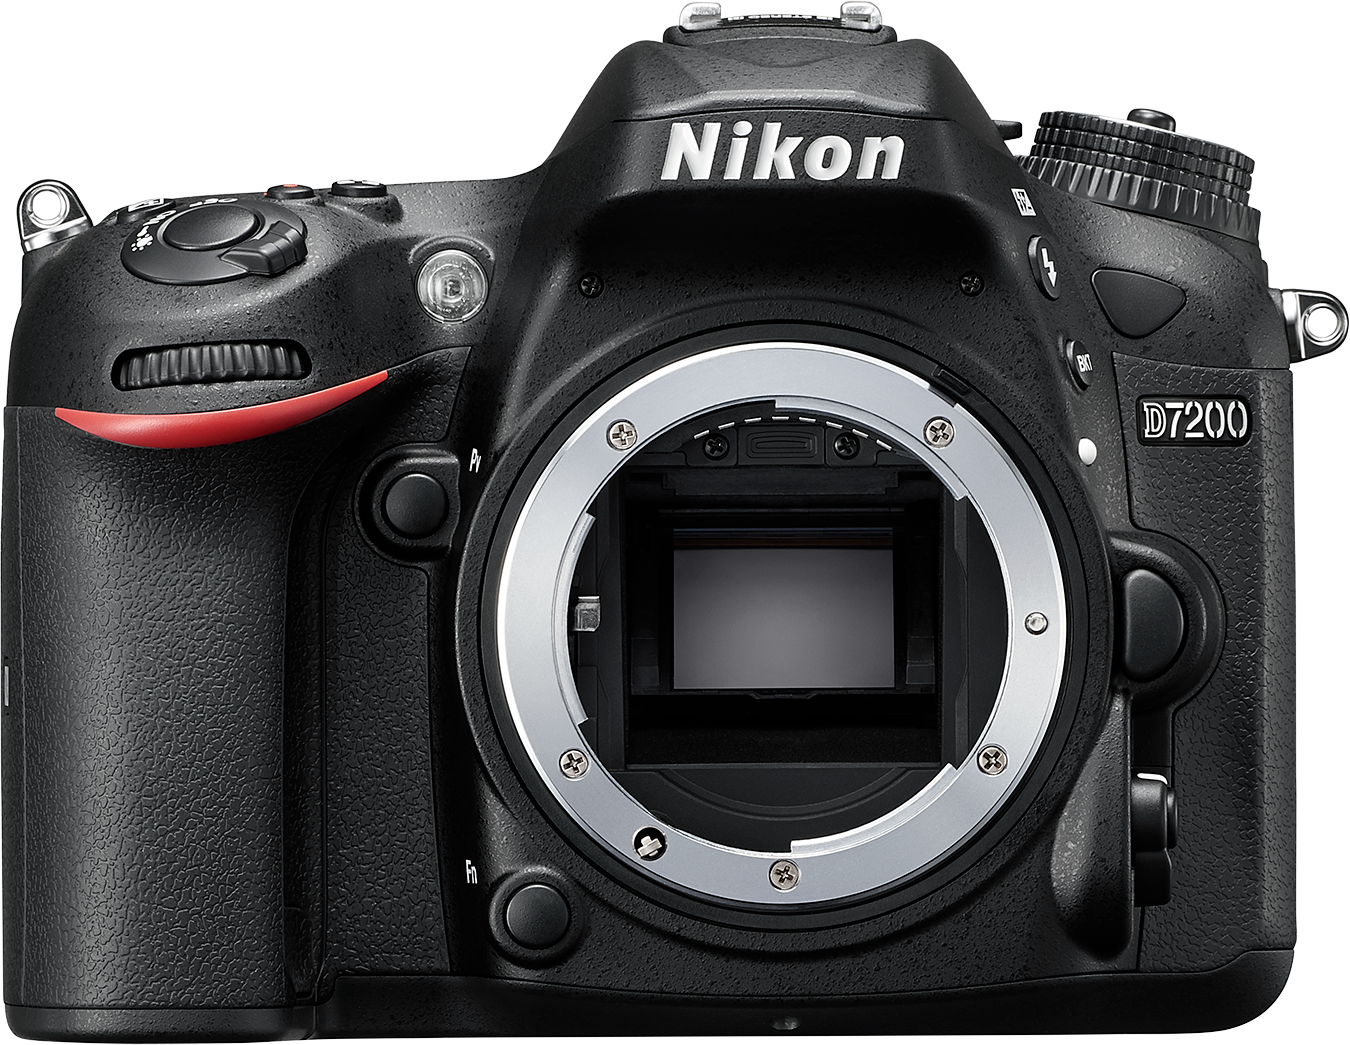 24 megapixel DX DSLR with Wifi, 6 fps and full HD video